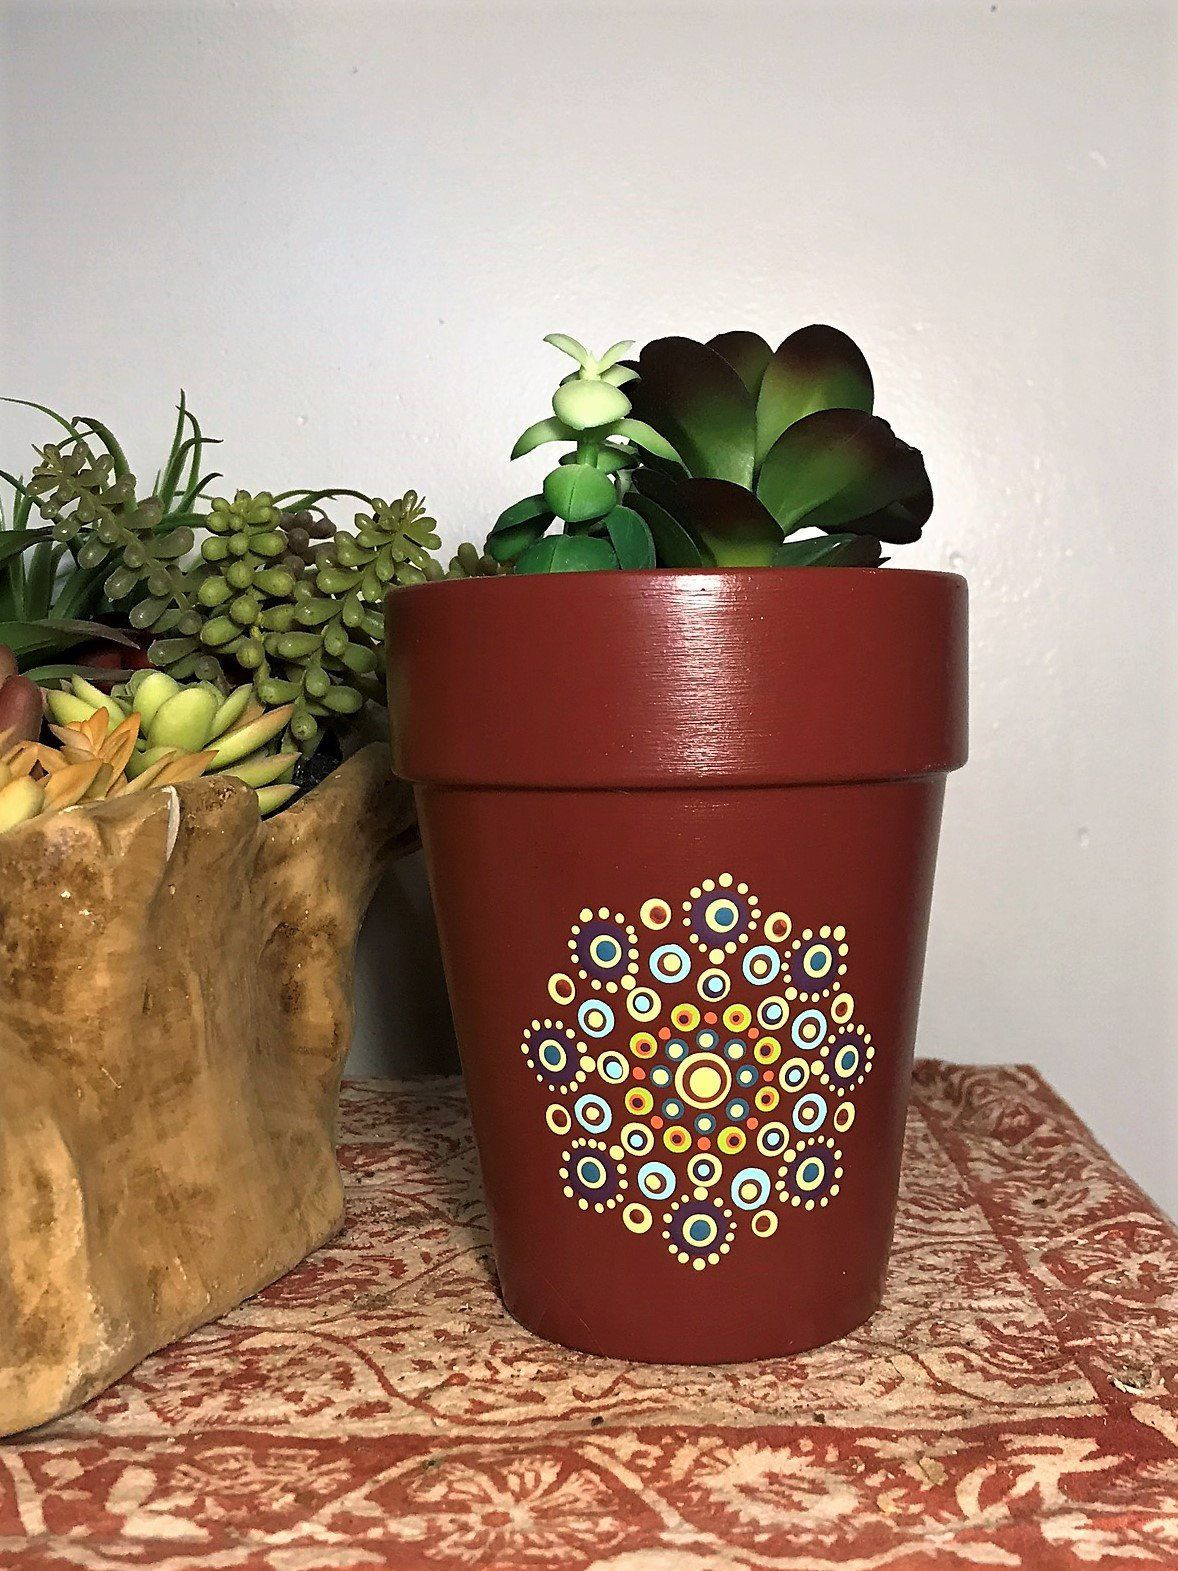 Excited To Share The Latest Addition To My Etsy Shop Macrame Plant Hanger Https Etsy Me 2eokhob Plan Flower Pots Painted Flower Pots Decorated Flower Pots